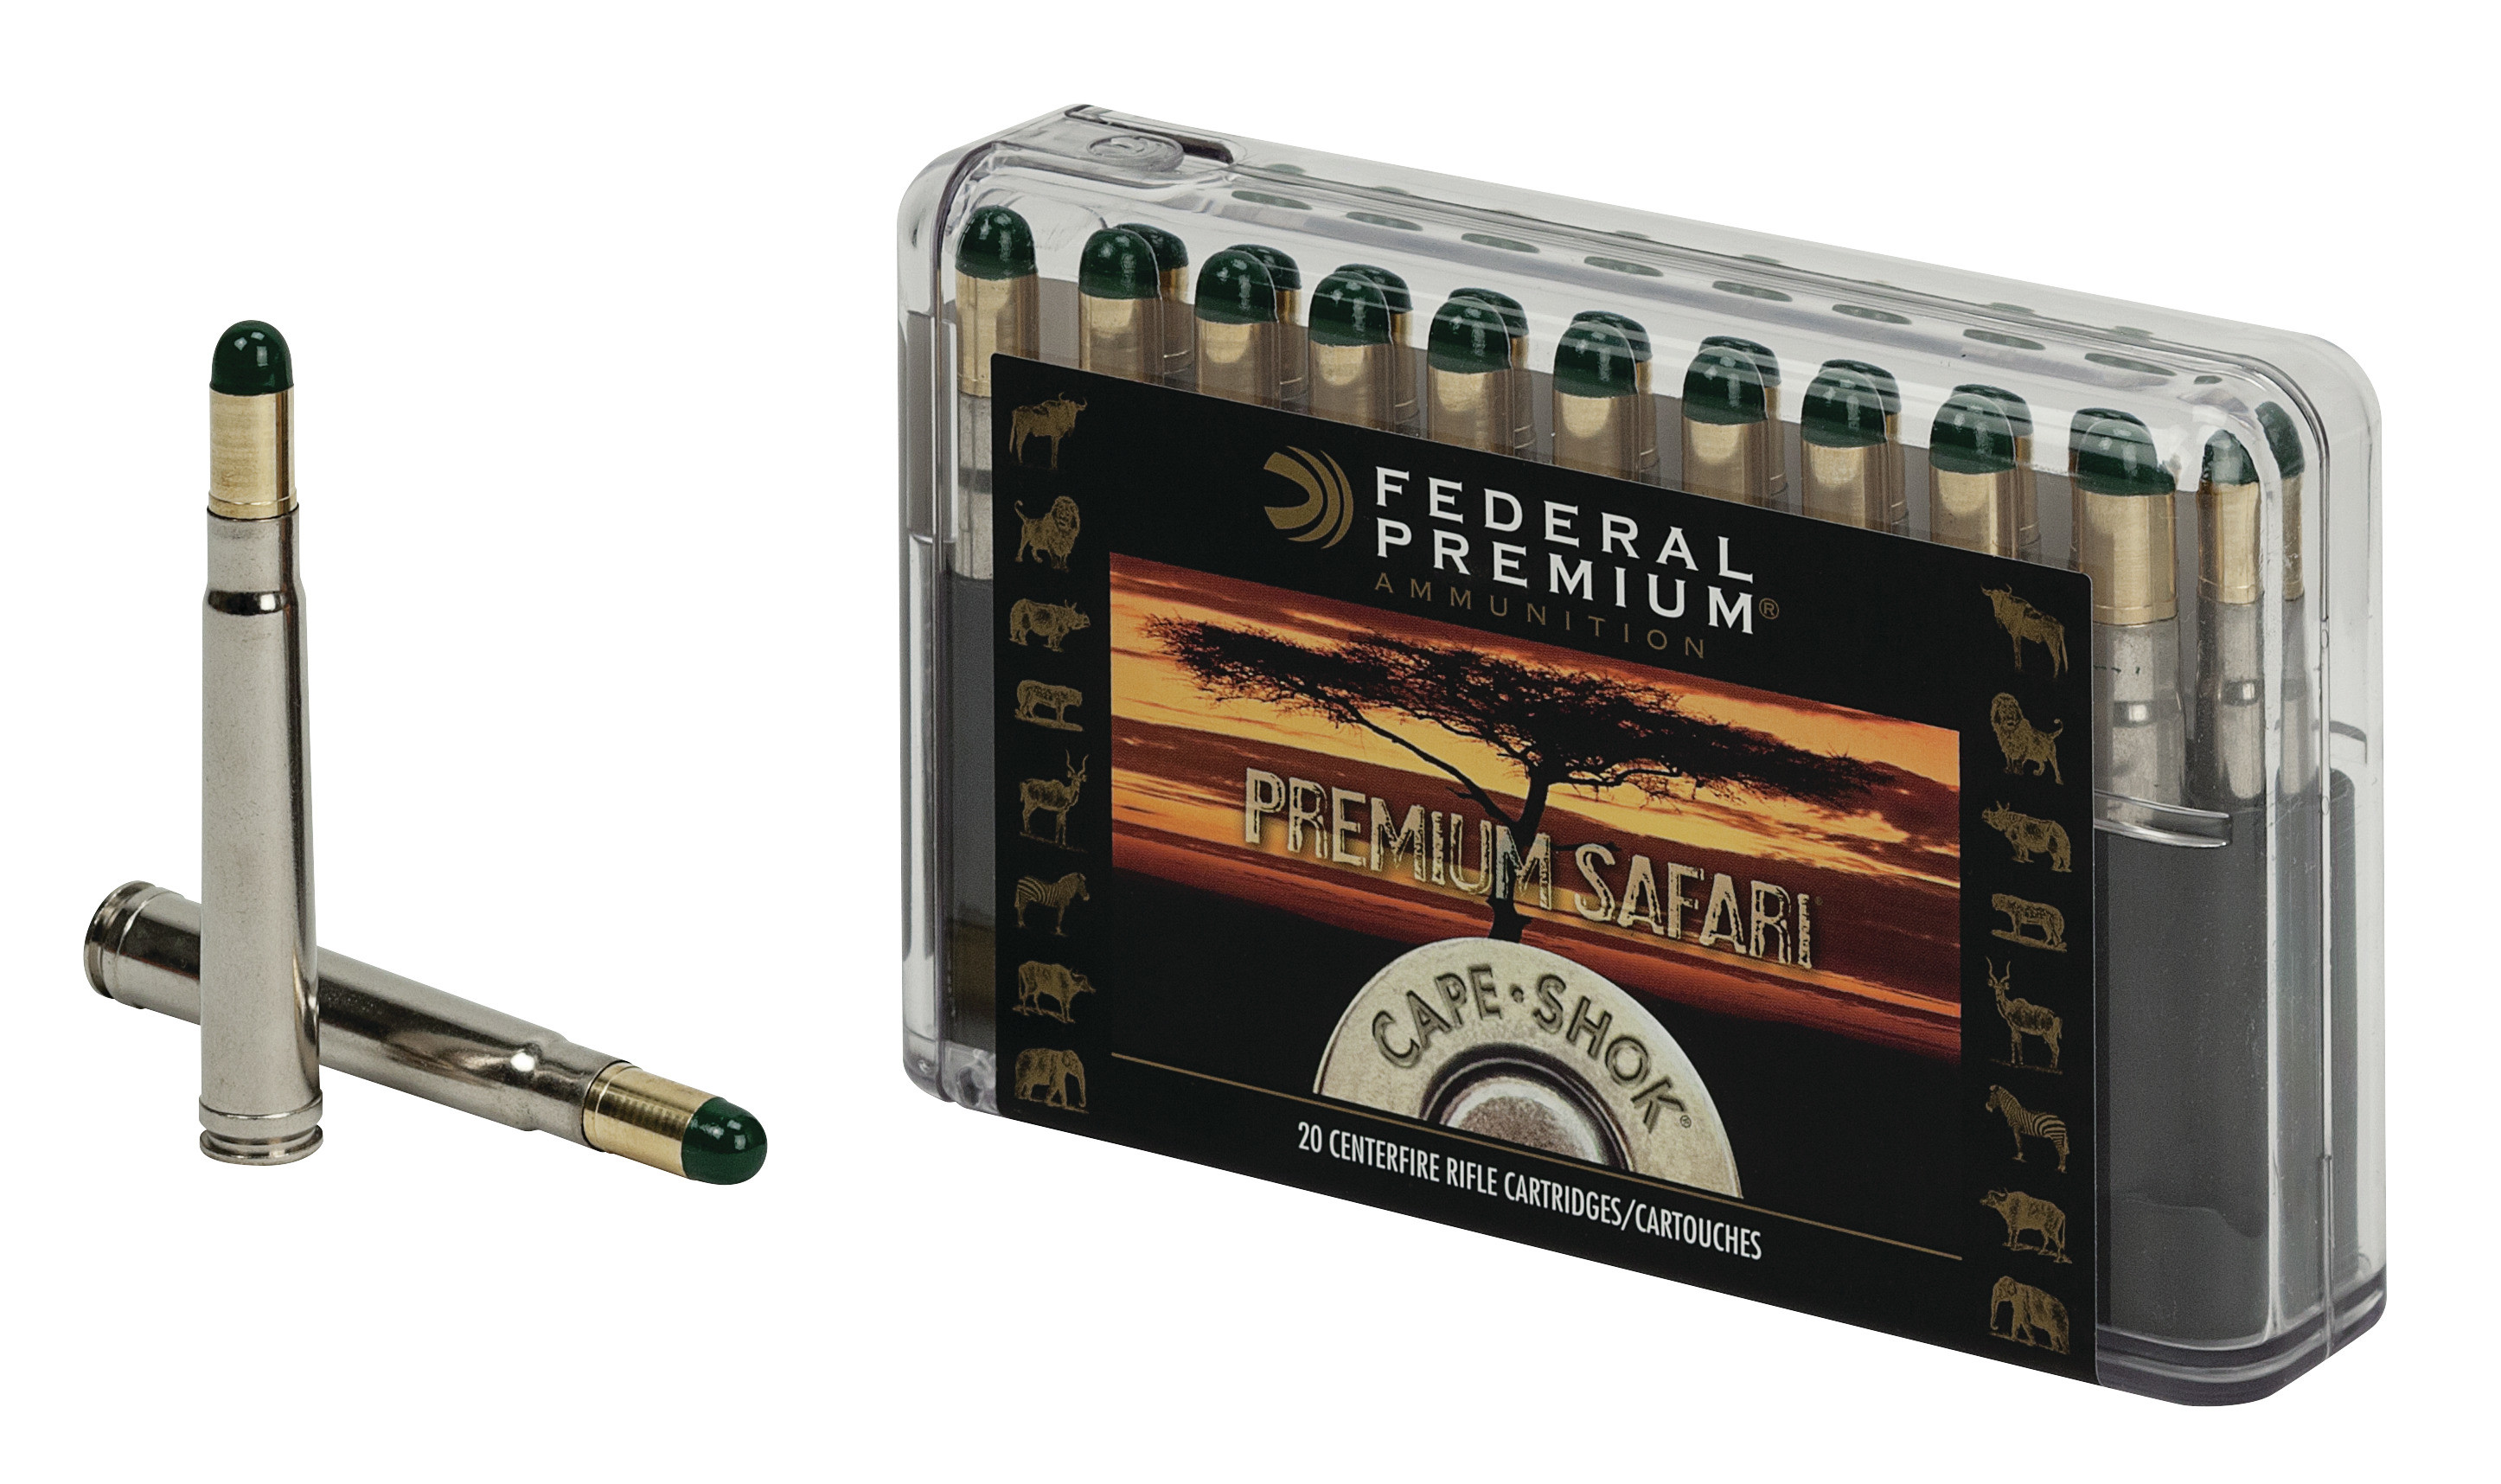 Federal Premium Cape-Shok Ammunition 9.3x74mm Rimmed 286GR Woodleigh Hydro Solid Round Nose Per 20